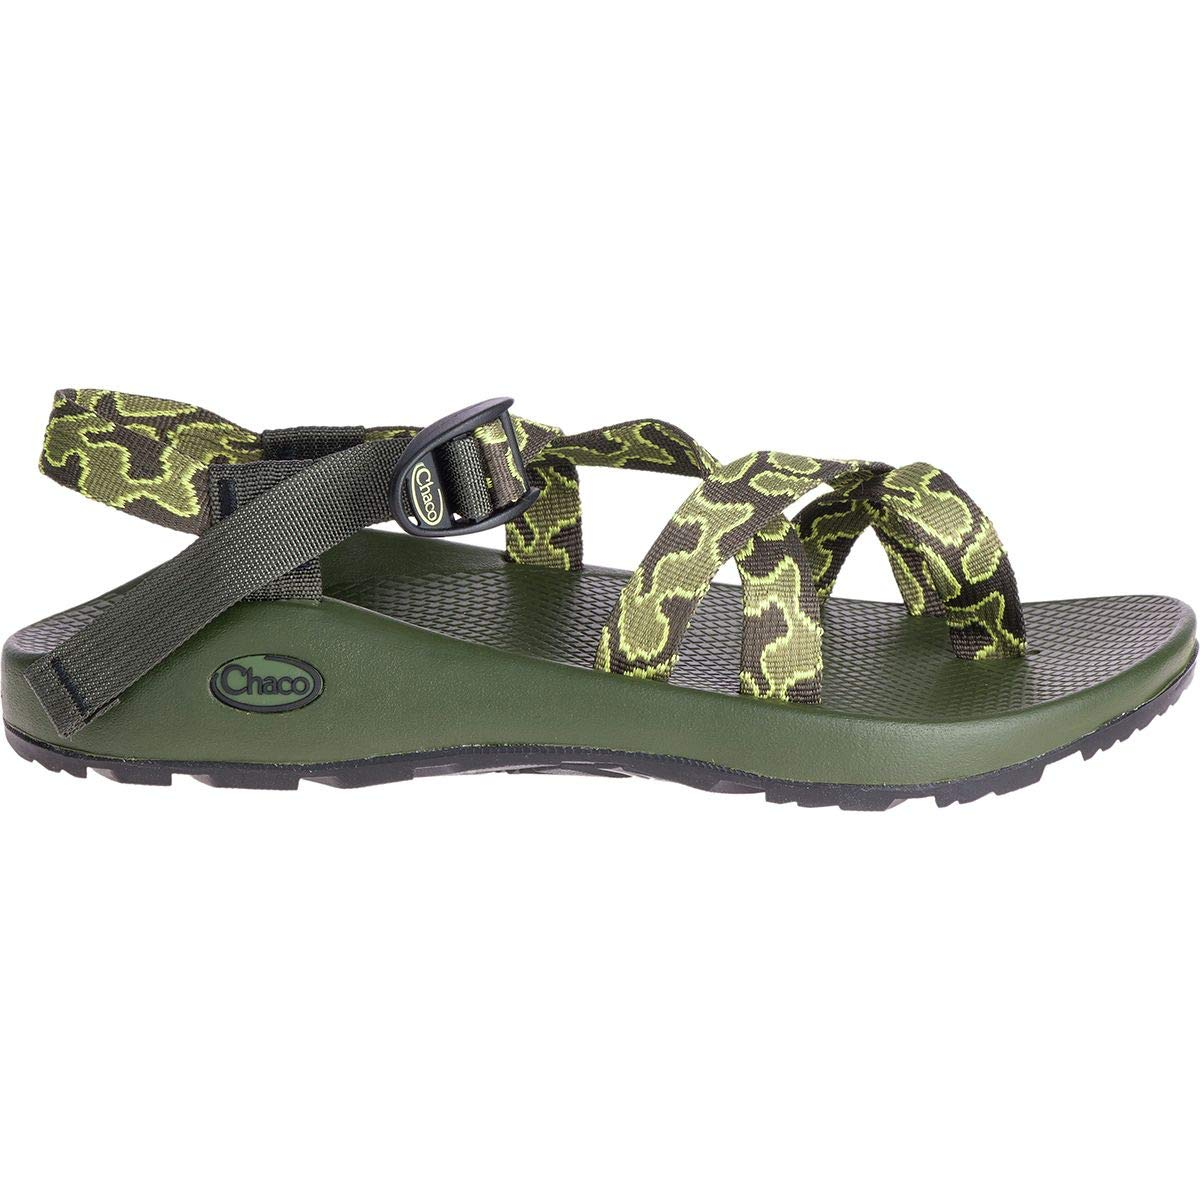 Mosey Hunter Chaco Women's Z2 Classic Athletic Sandal